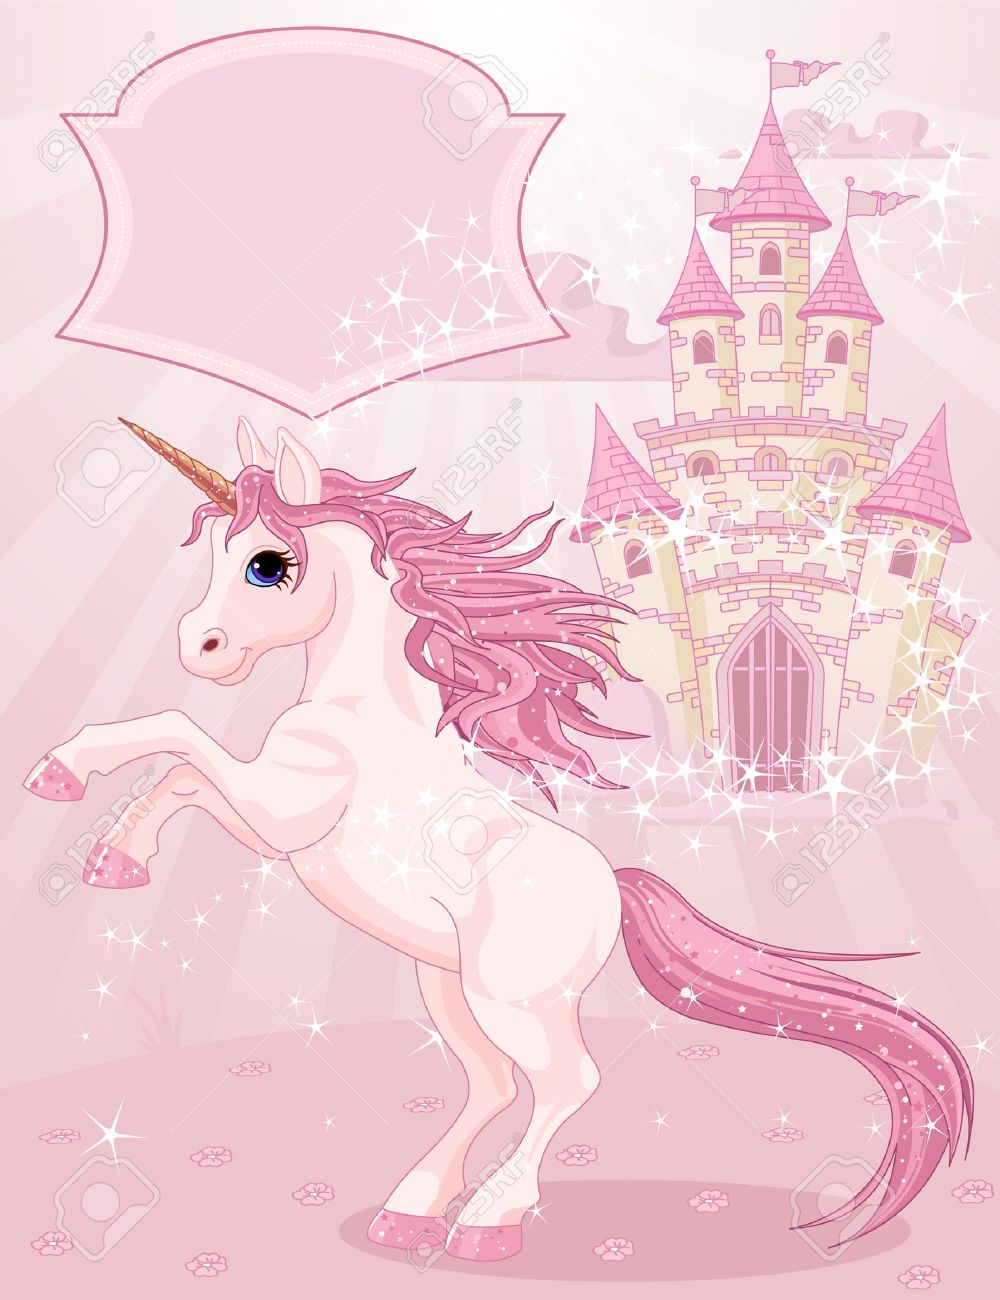 Illustration of a Fairy Tale Castle and Unicorn Stock Vector - 11844714